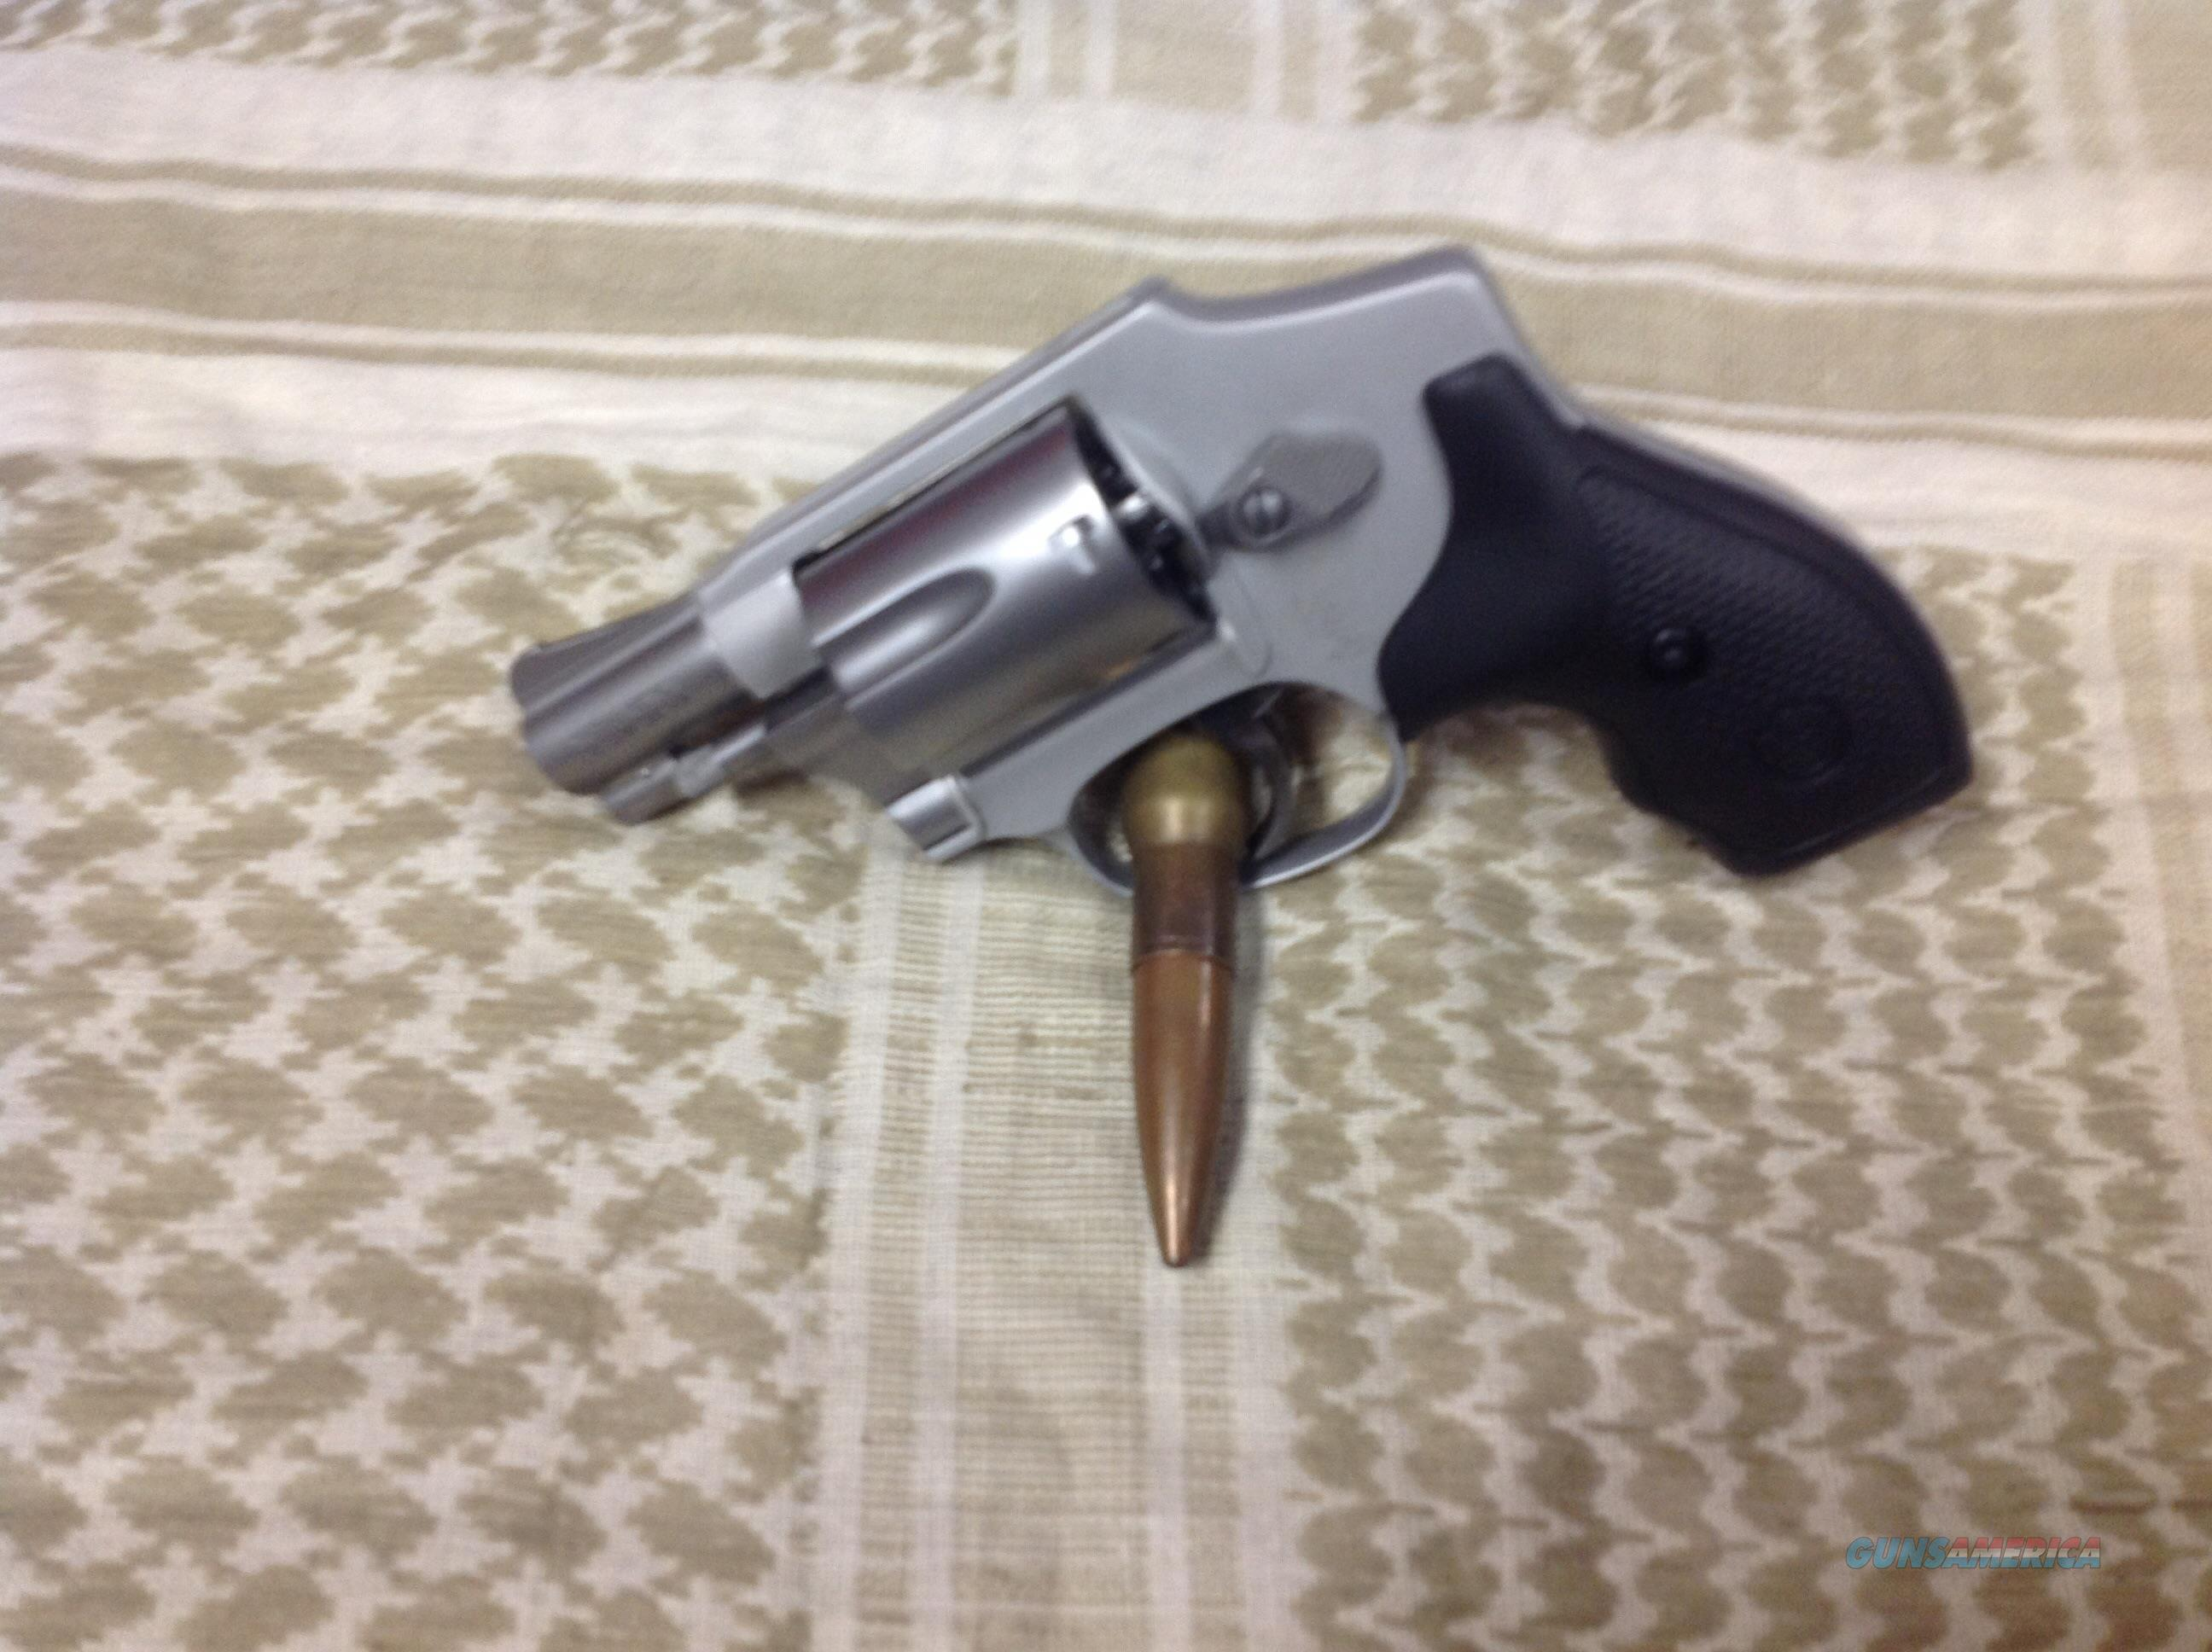 Smith & Wesson 642-1 38 spl  Guns > Pistols > Smith & Wesson Revolvers > Pocket Pistols